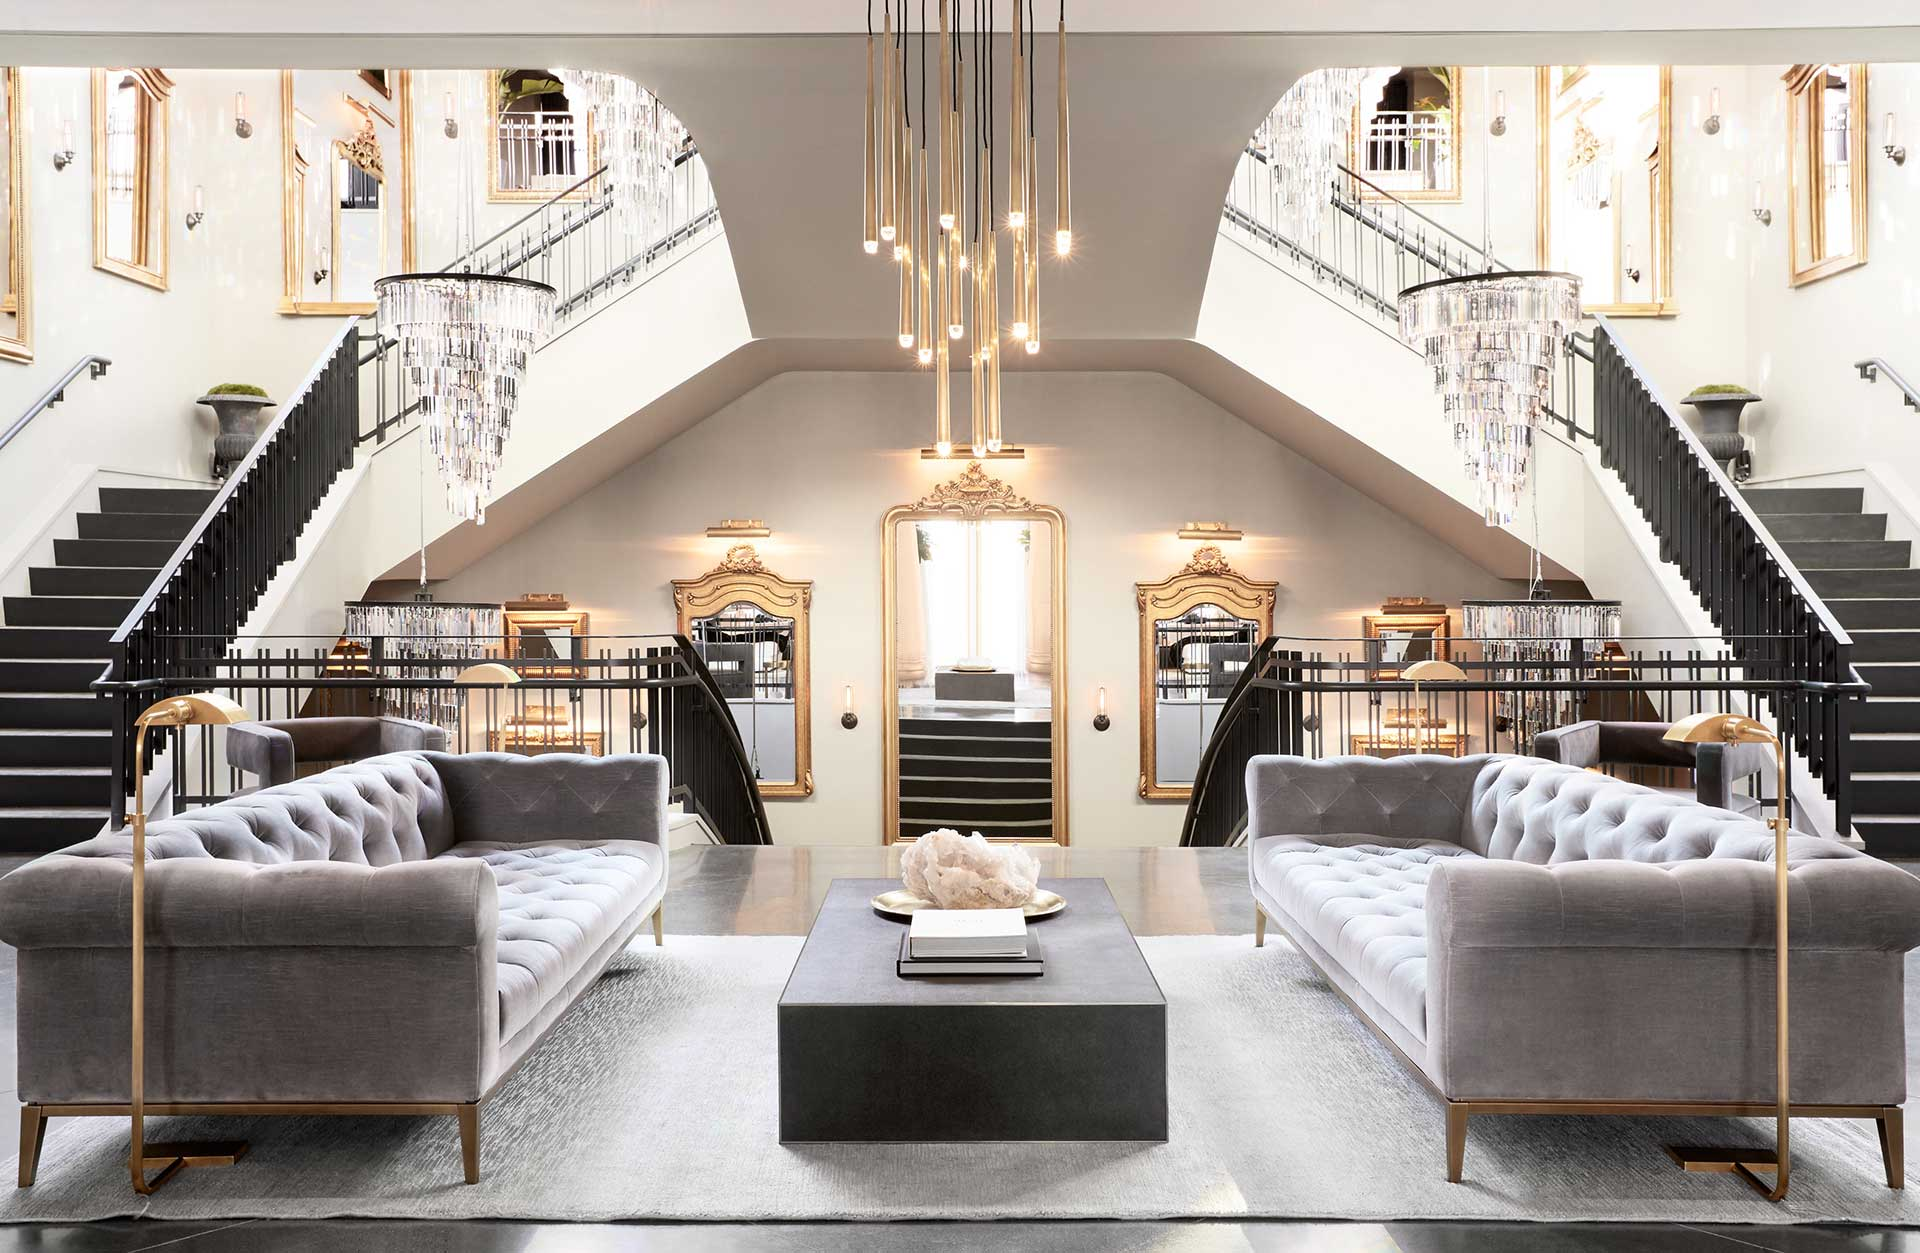 restoration hardware living room paint samples gallery lease crutcher lewis grand staircase and chandelier